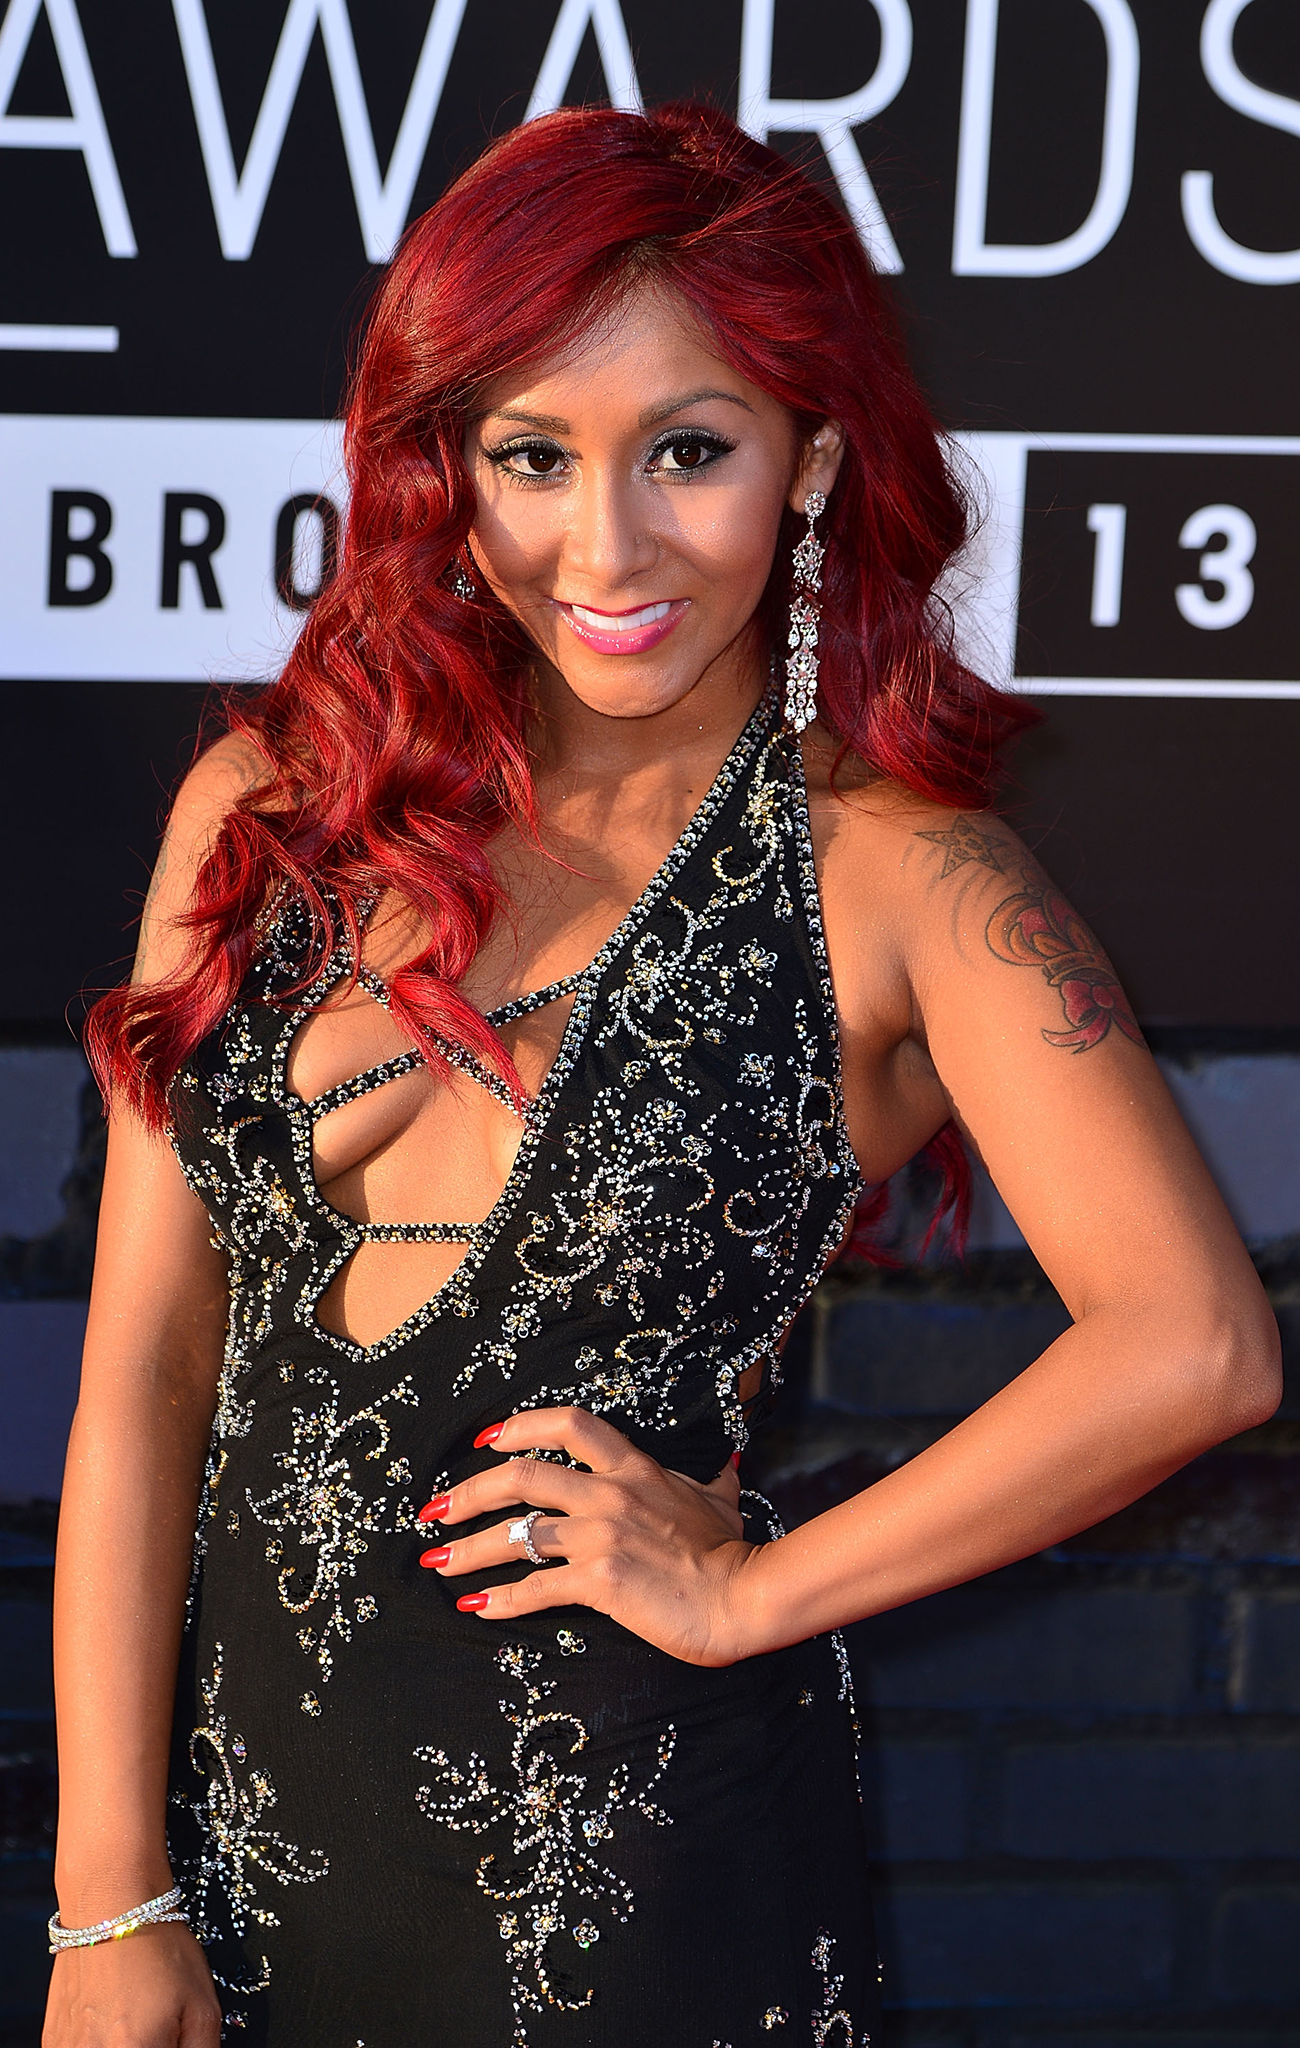 Snooki only looks proud of her assets. (James Devaney/WireImage)